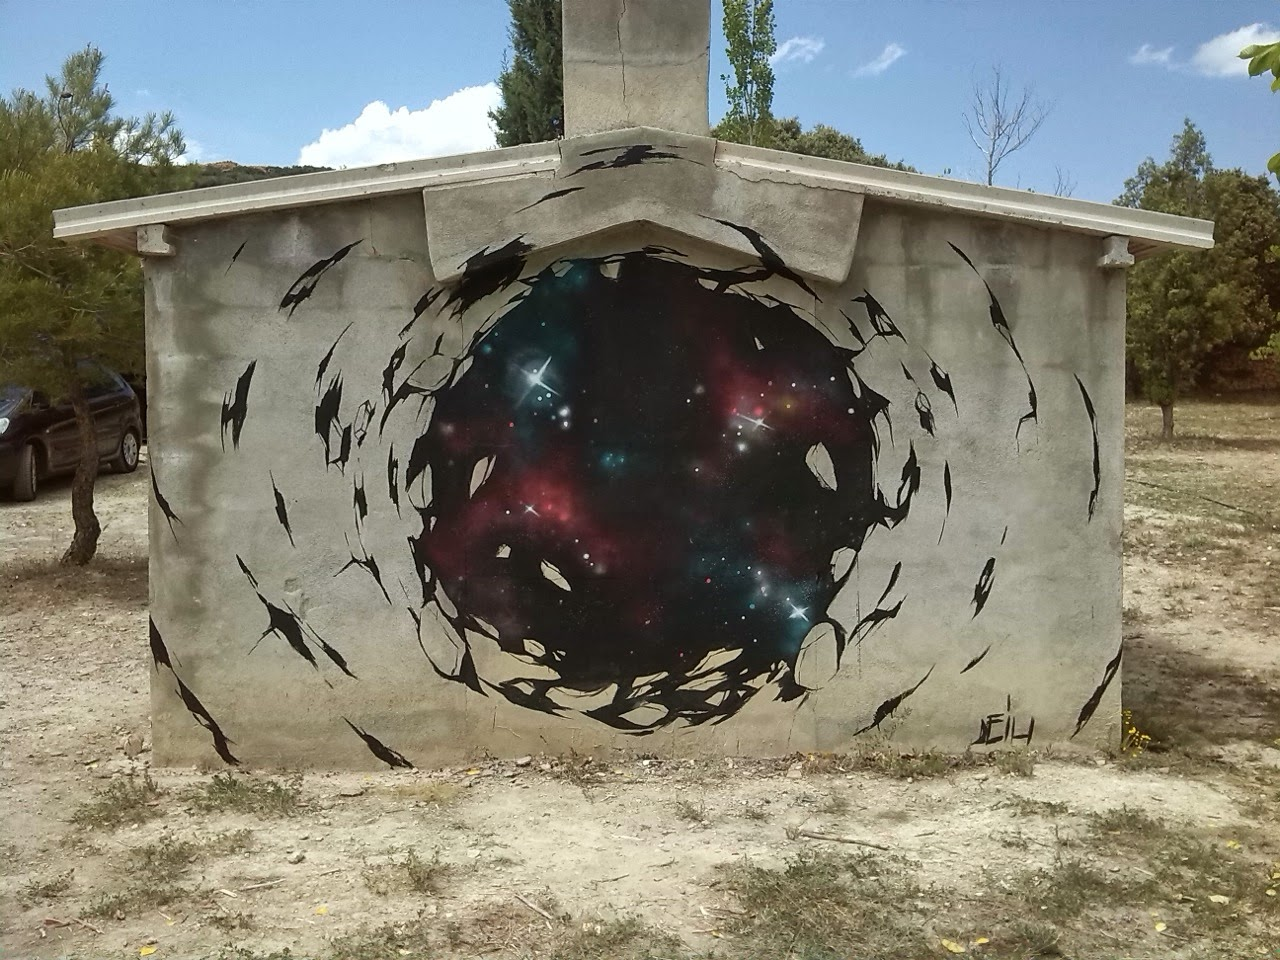 El Deih just sent us some images from his newest mural somewhere around his hometown of Valencia in Spain.